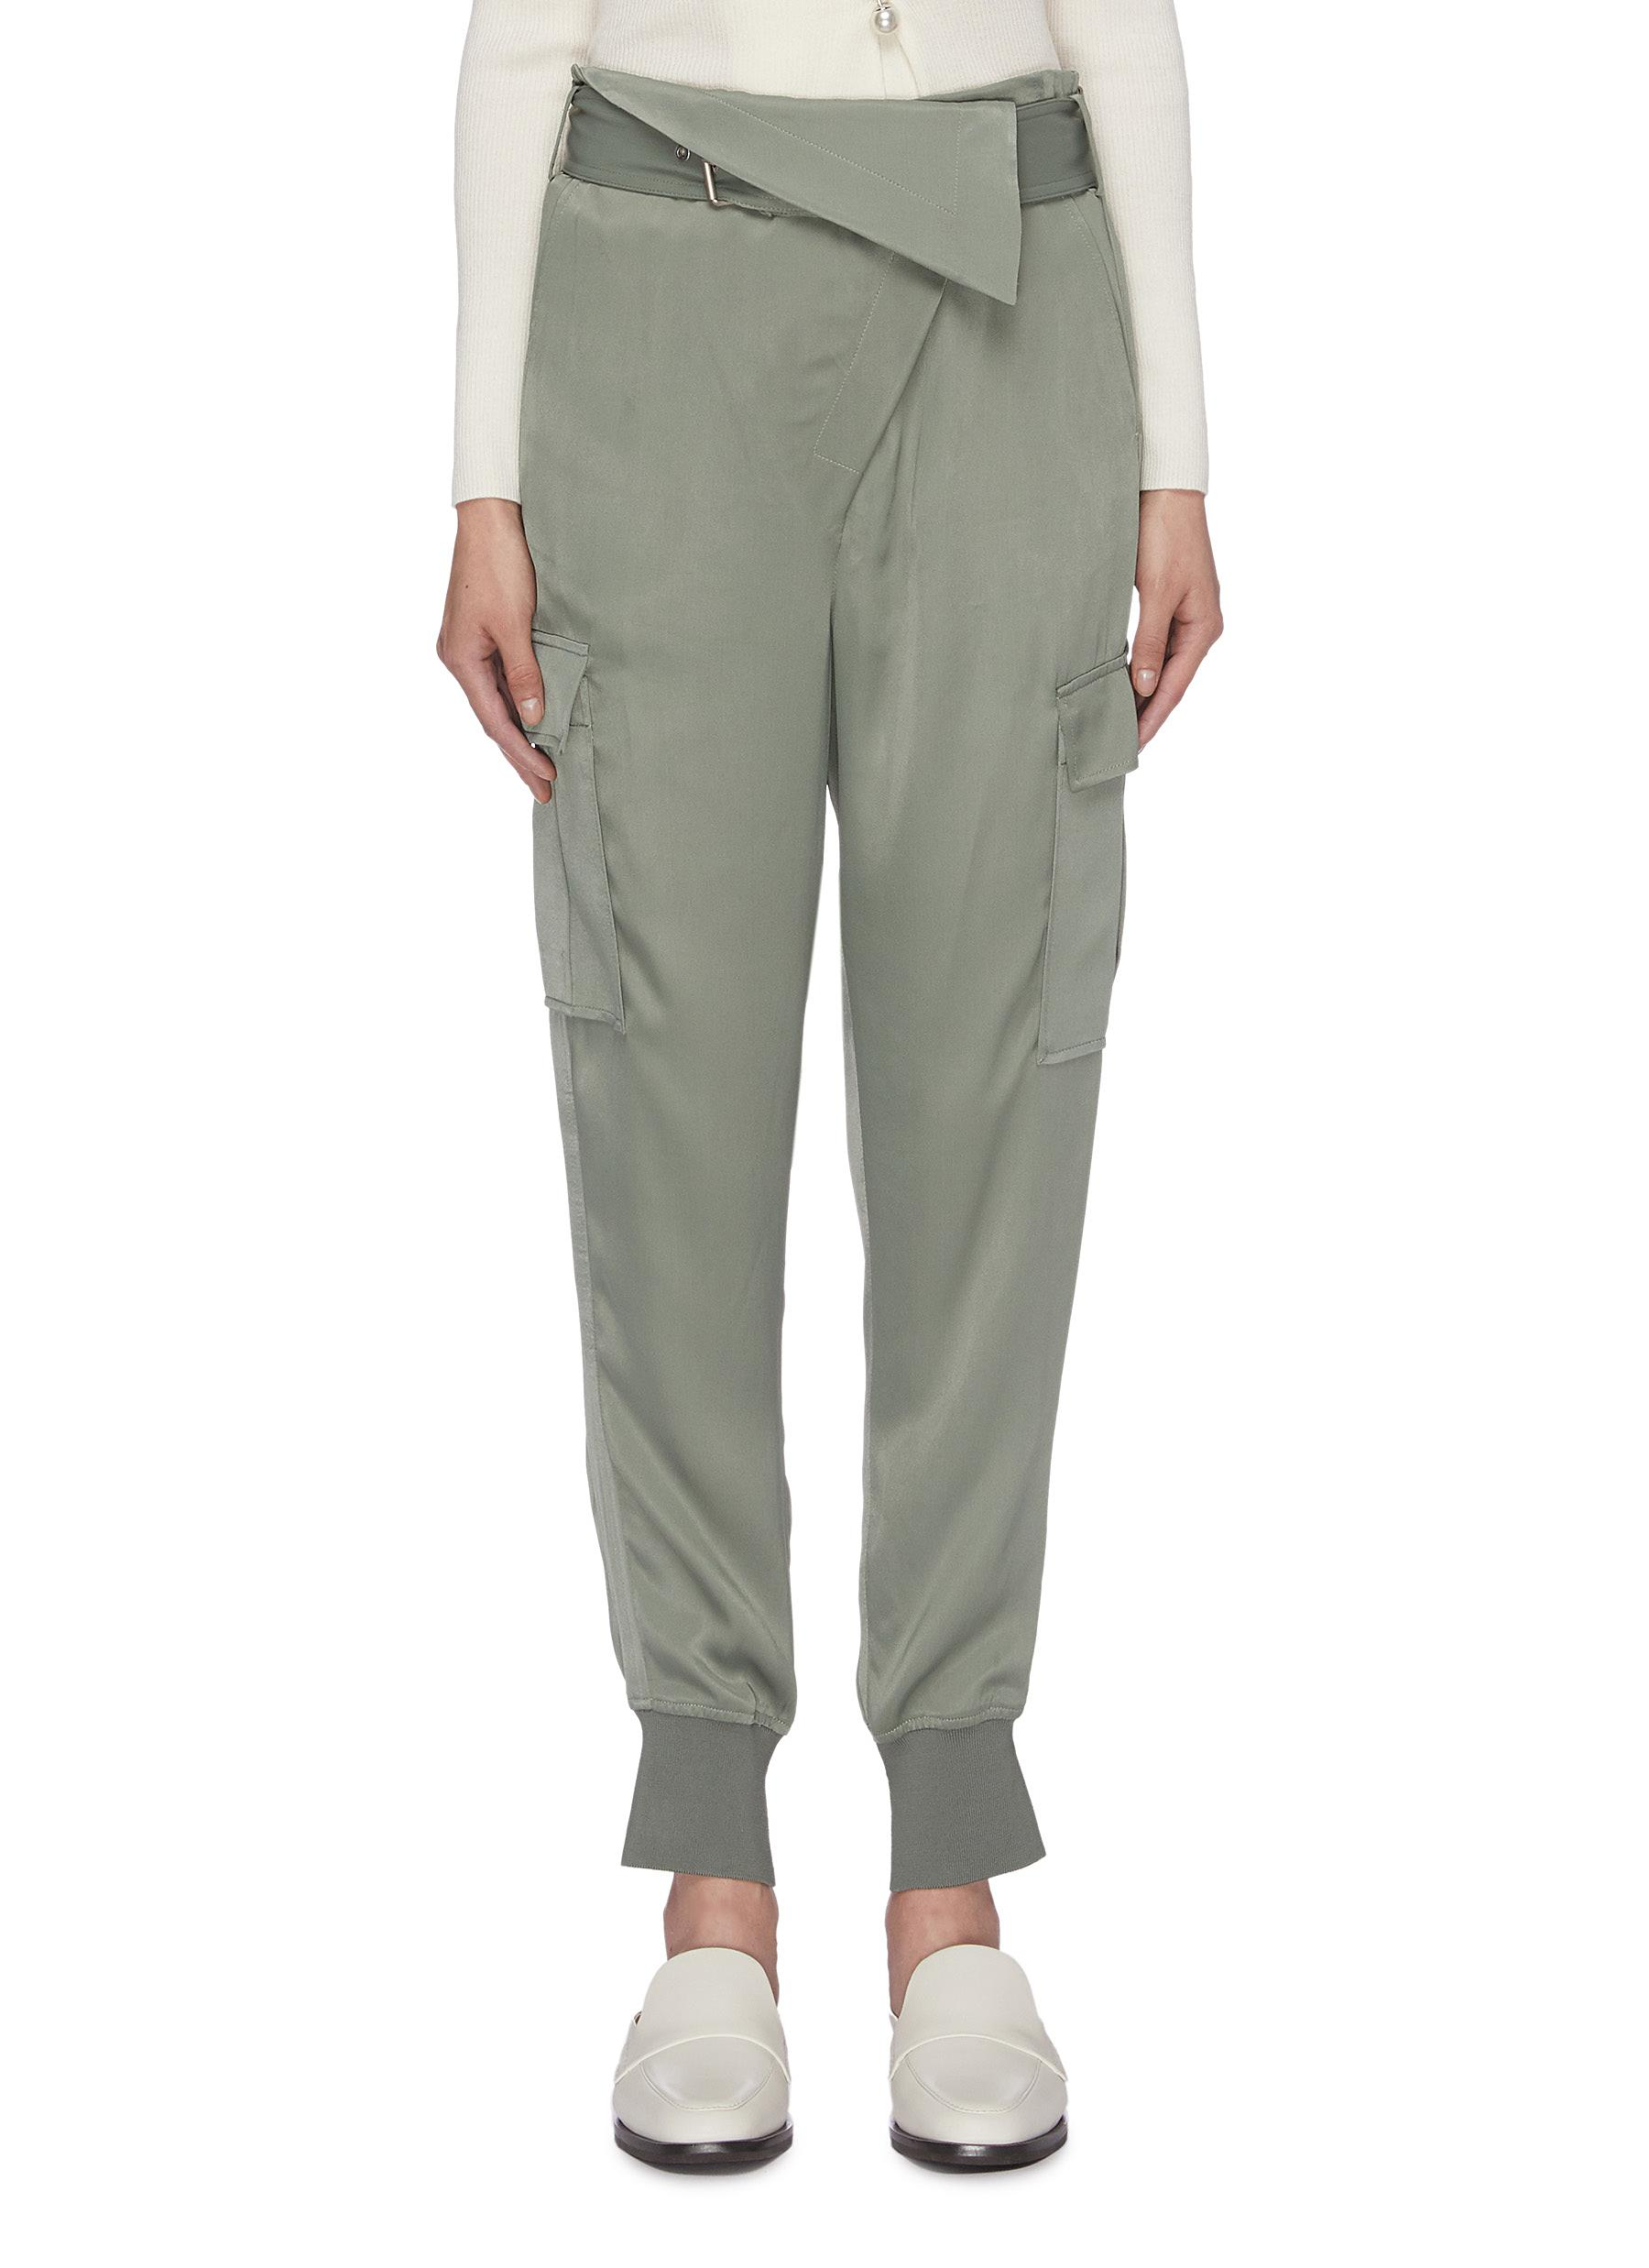 Belted foldover waist satin cargo jogging pants by 3.1 Phillip Lim